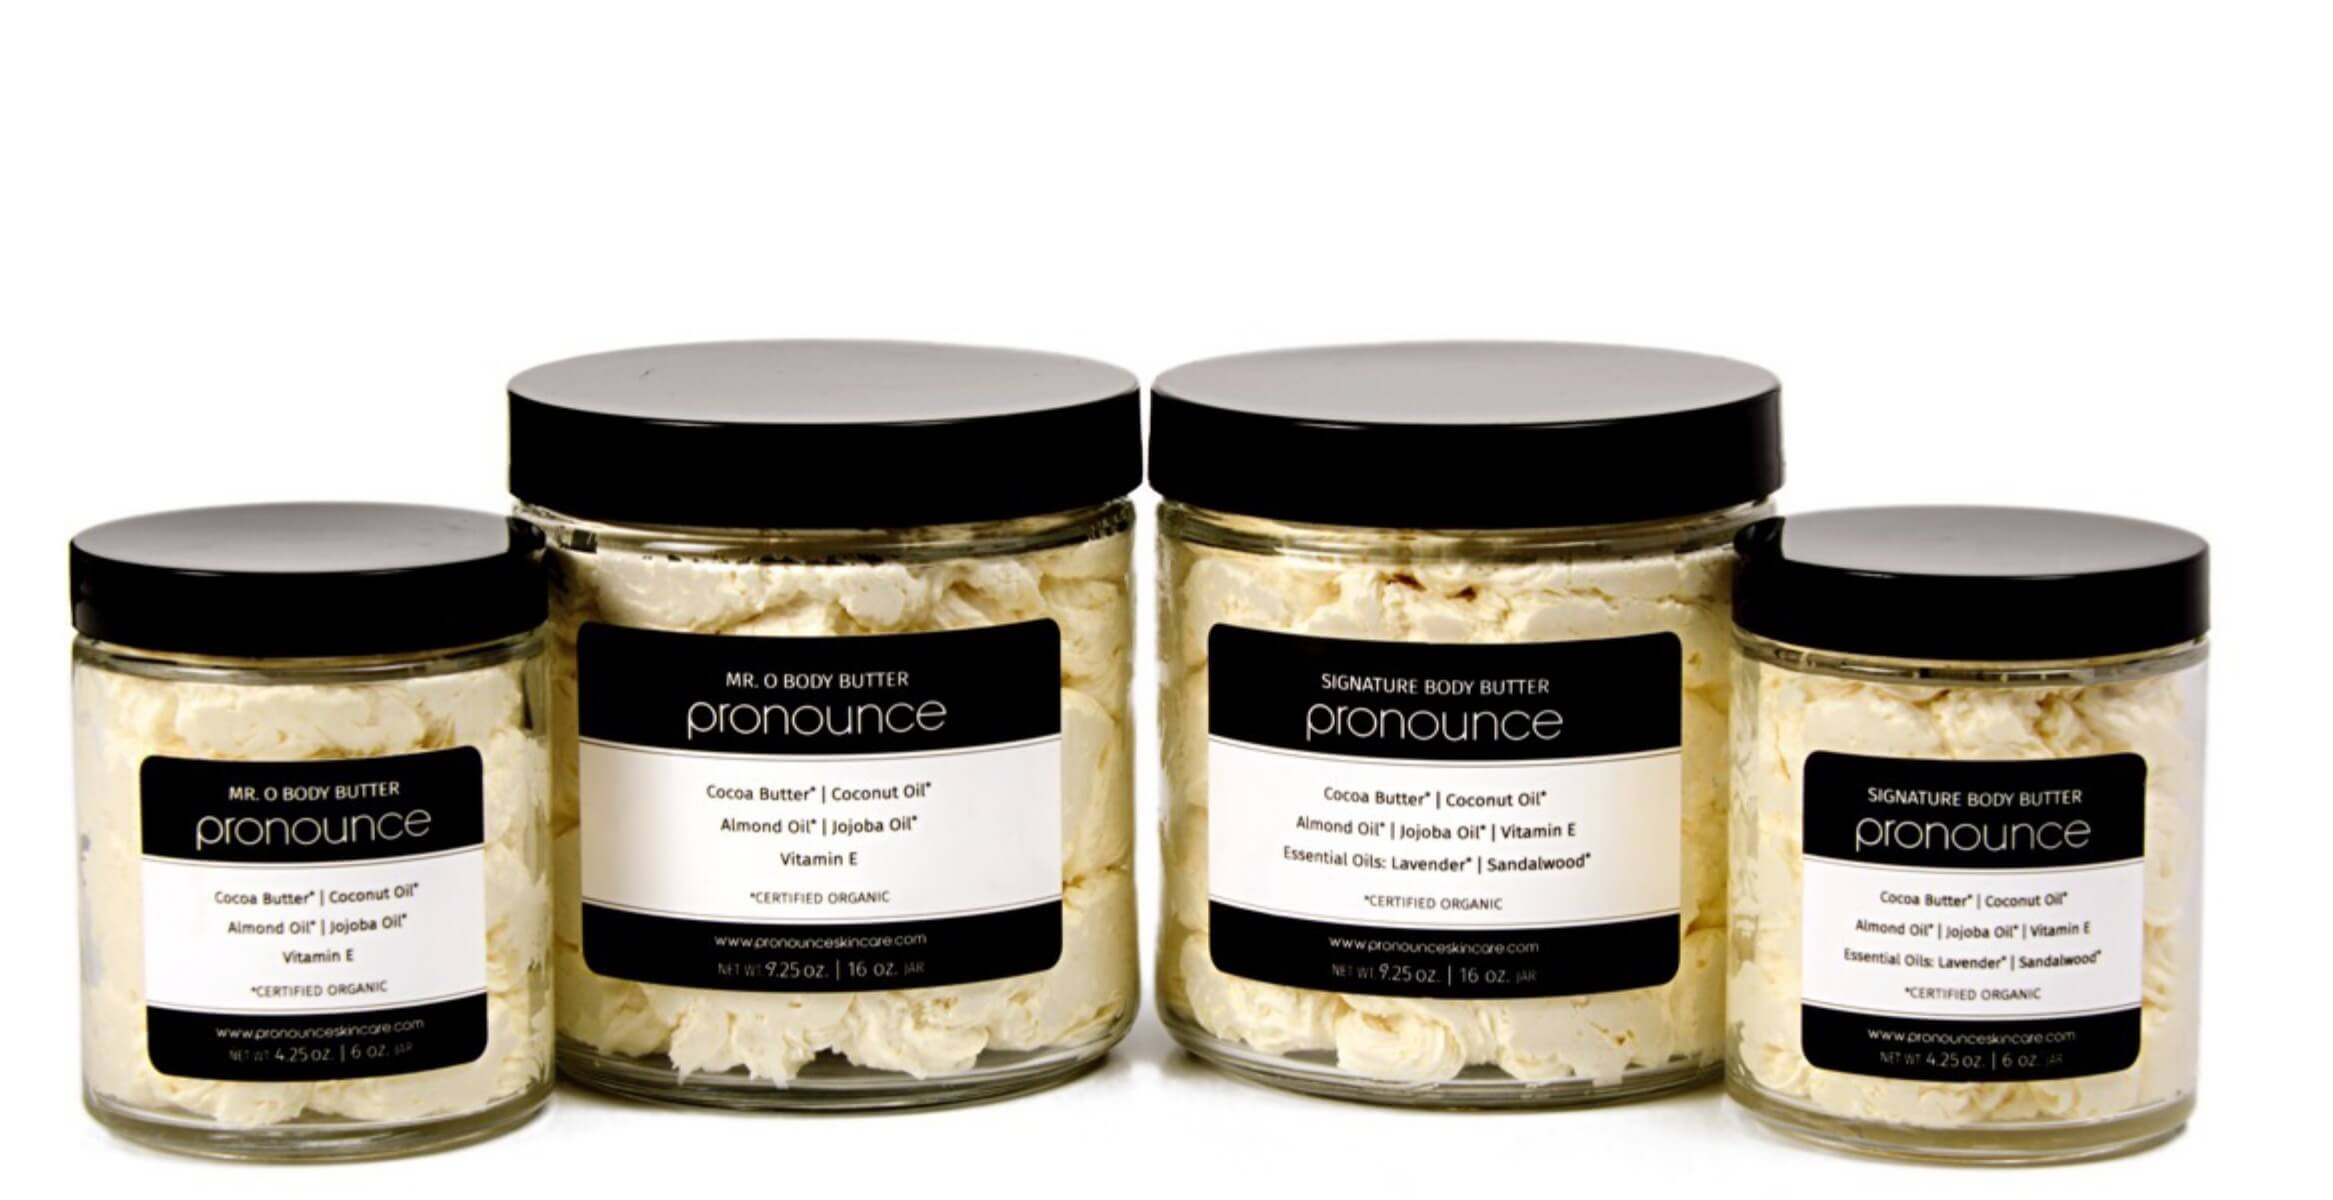 Body Butters Full Line Lids On | Pronounce Skincare & Herbal Boutique